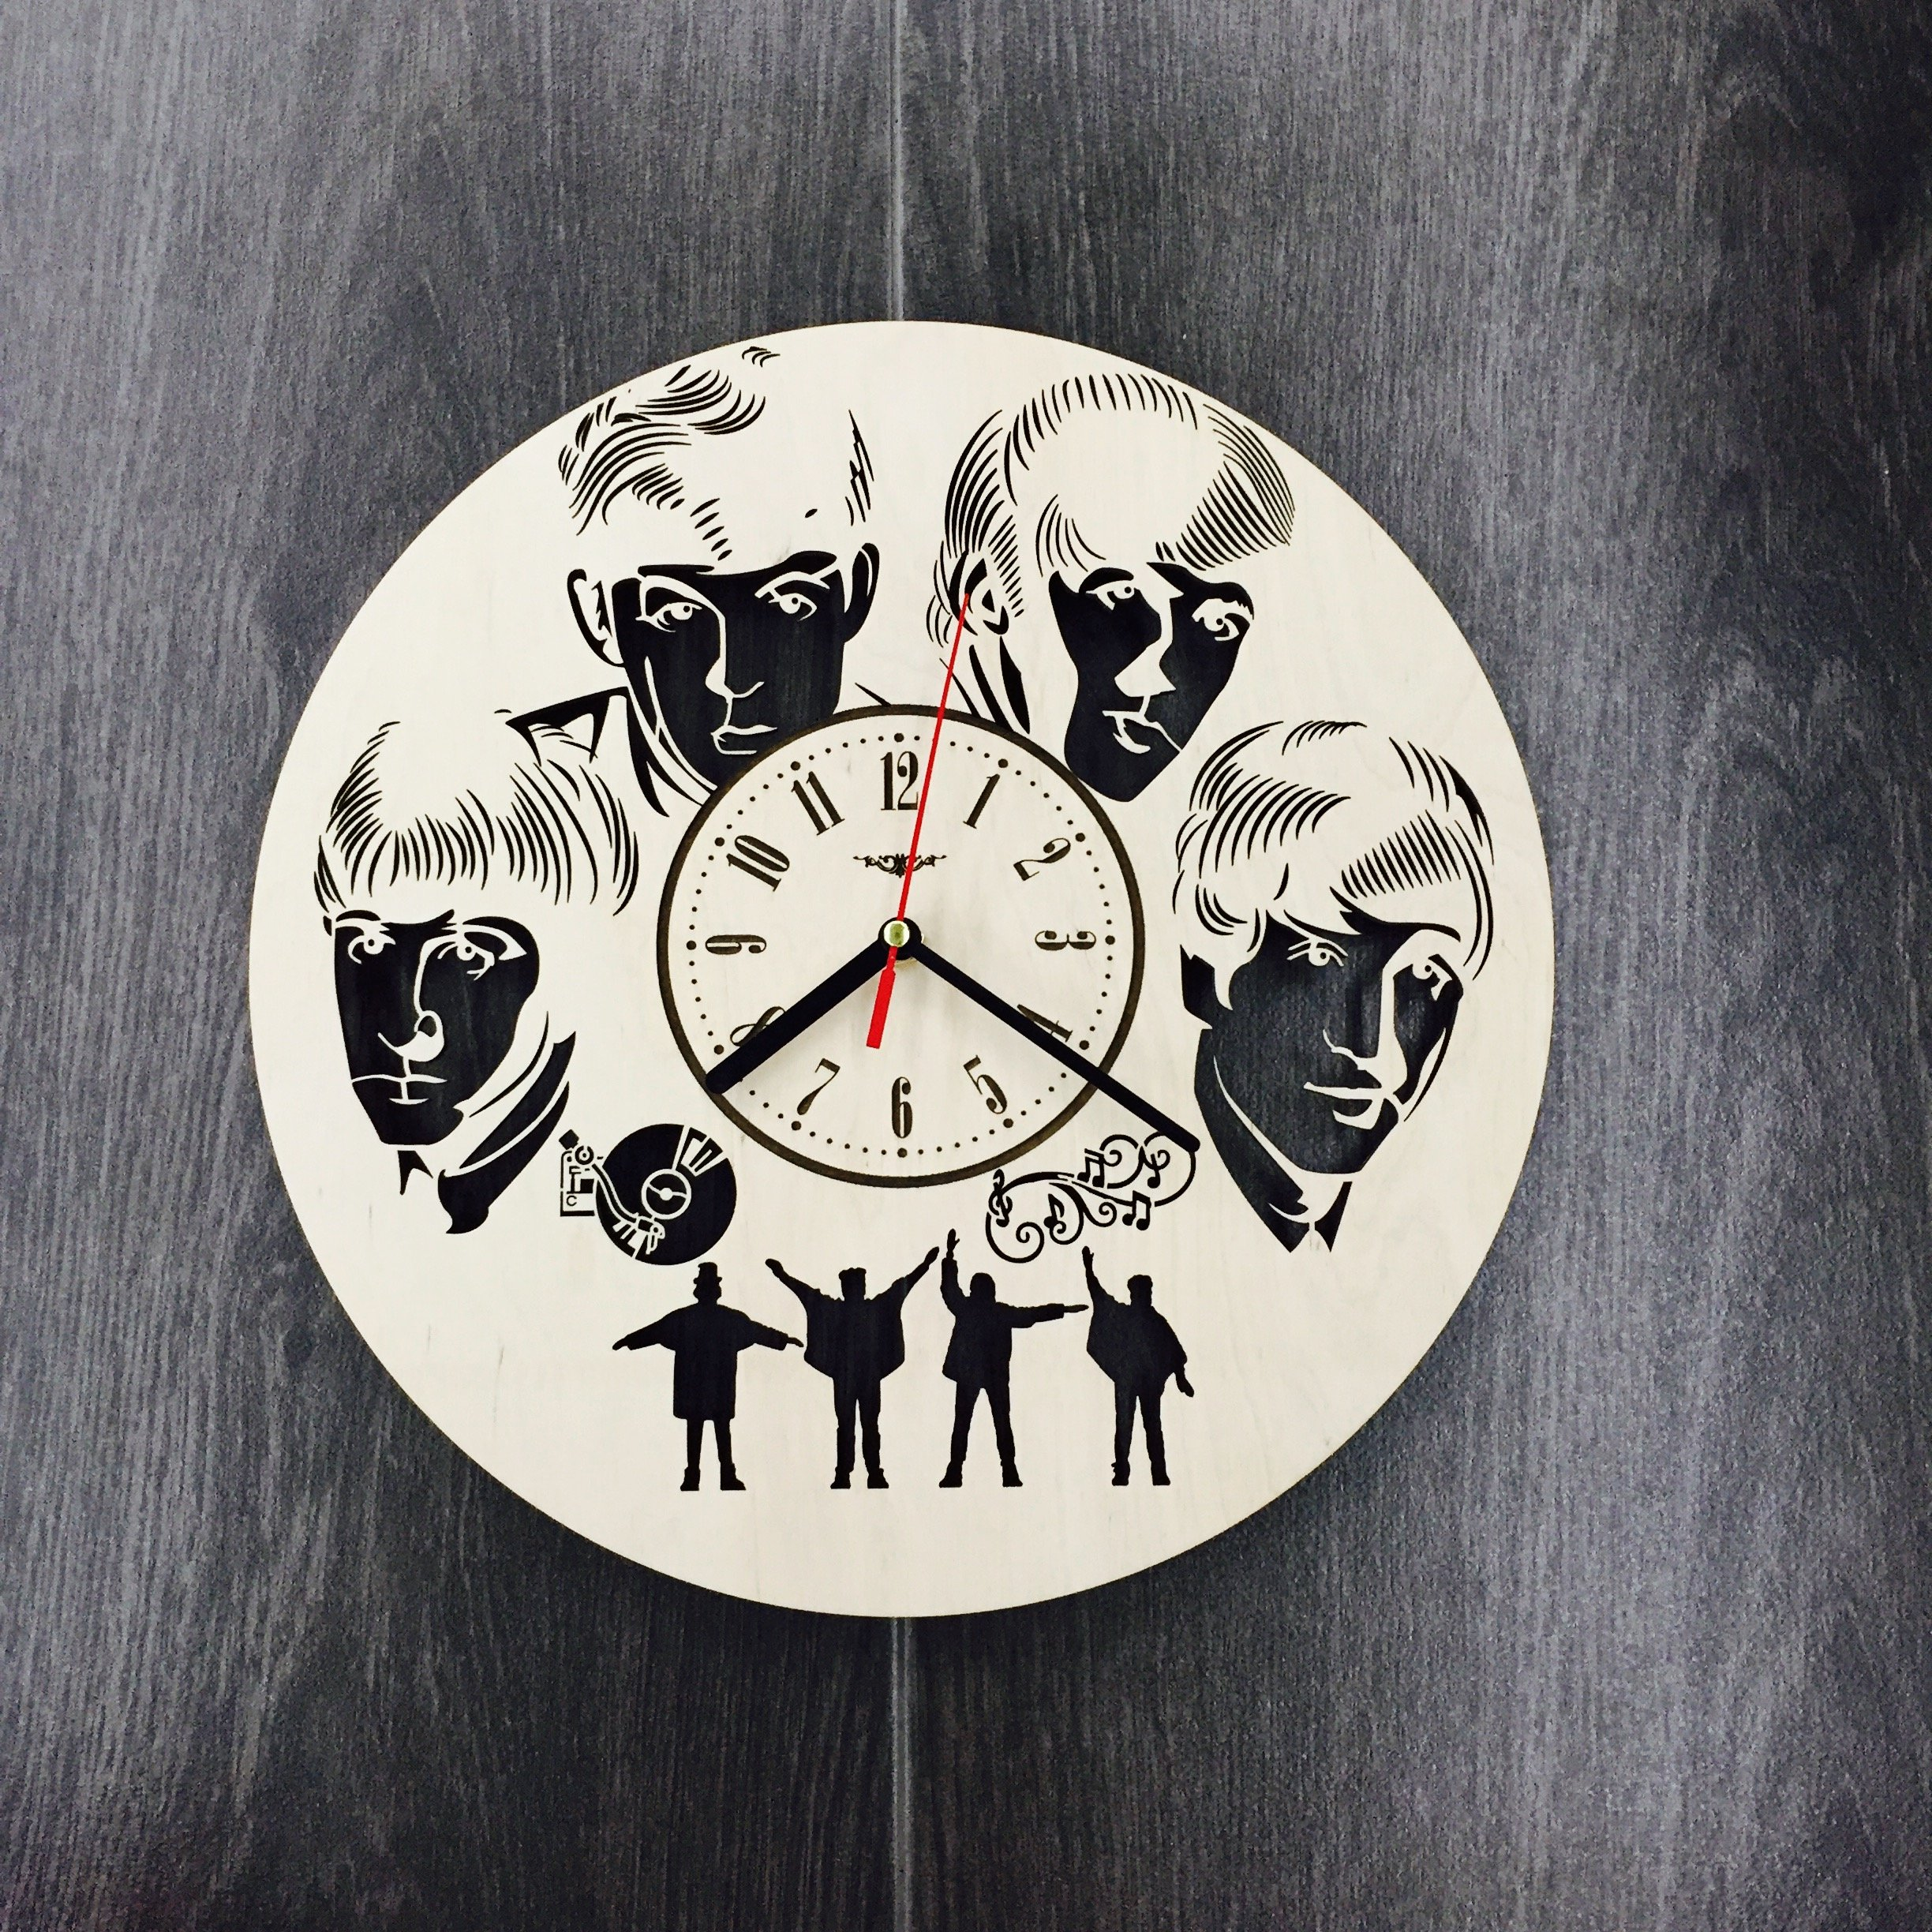 Beatles Wall Clock Made of WOOD - Perfect and Beautifully Cut - Decorate your Home with MODERN ART - UNIQUE GIFT for Him and Her - Size 12 Inches